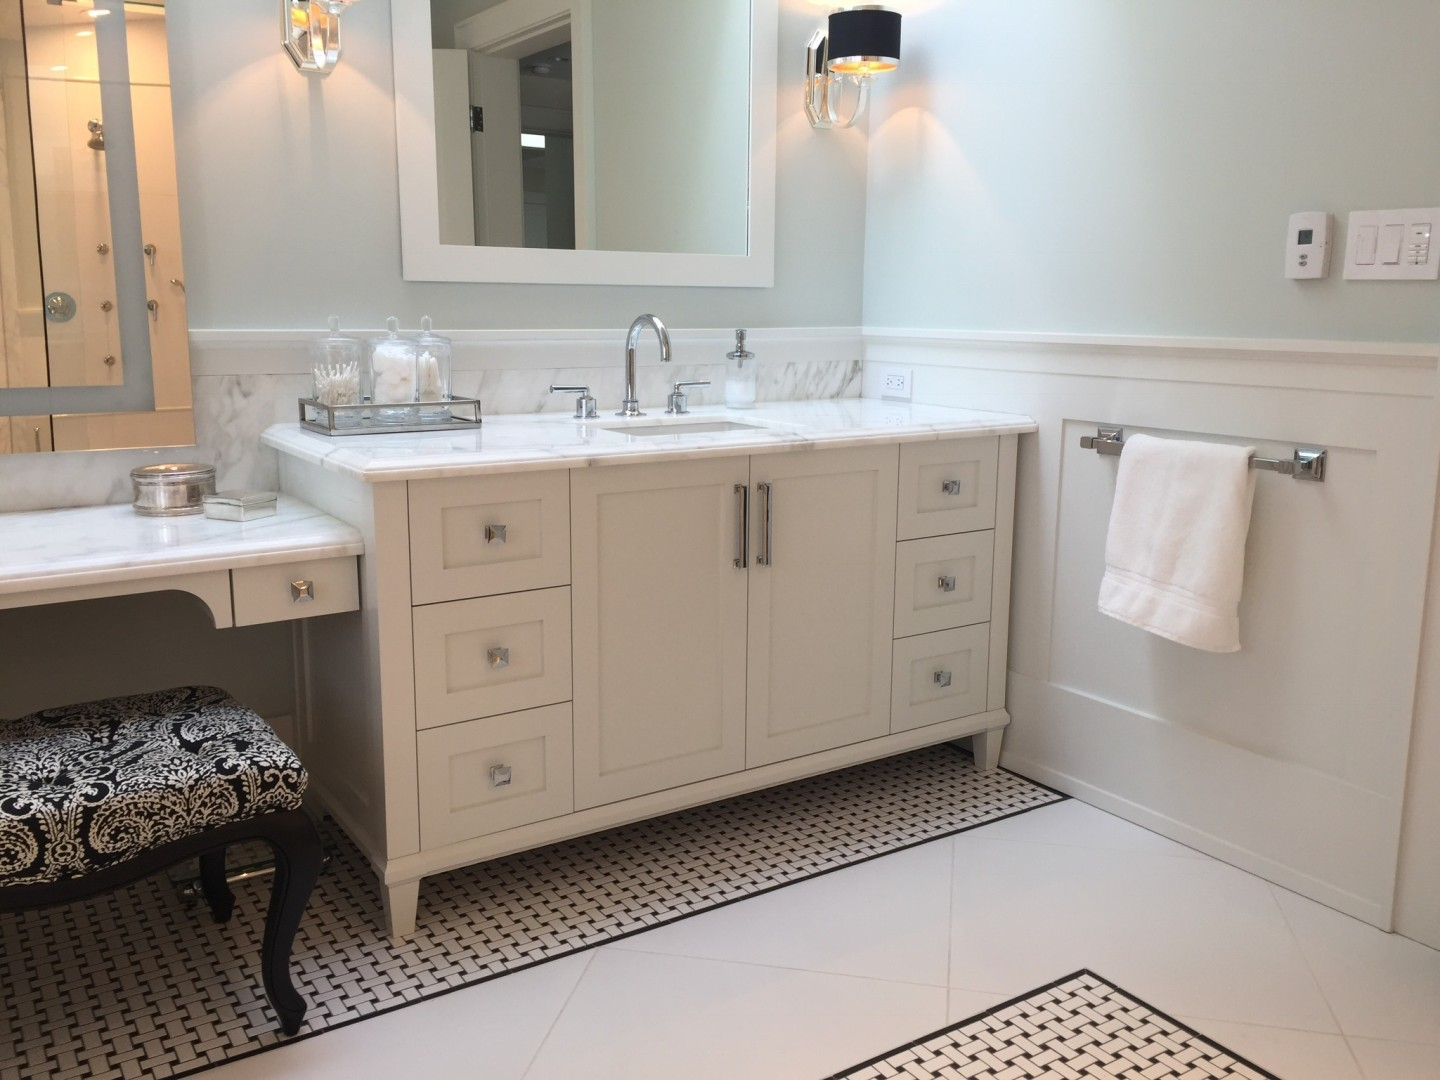 Luxury Bathroom Design With Calcutta Marble Vanity By Shelley Scales